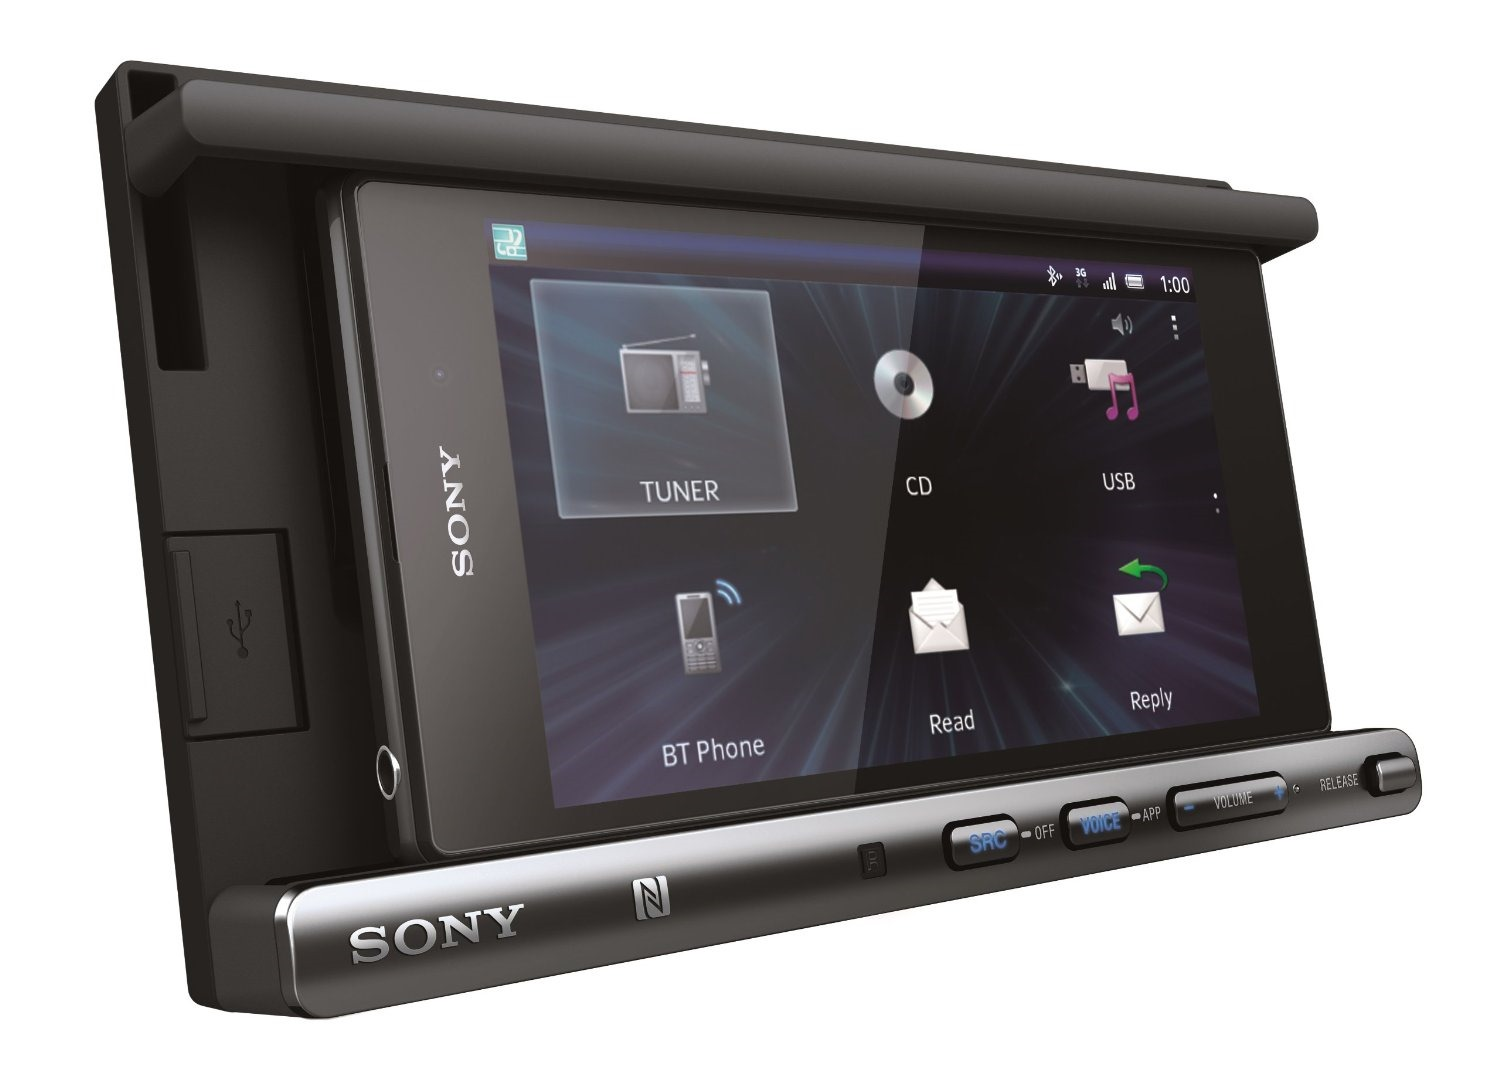 Sony's XSP N1BT Double-DIN Smartphone Car Stereo Phone Mount Is Available On Amazon And Crutchfield For $250